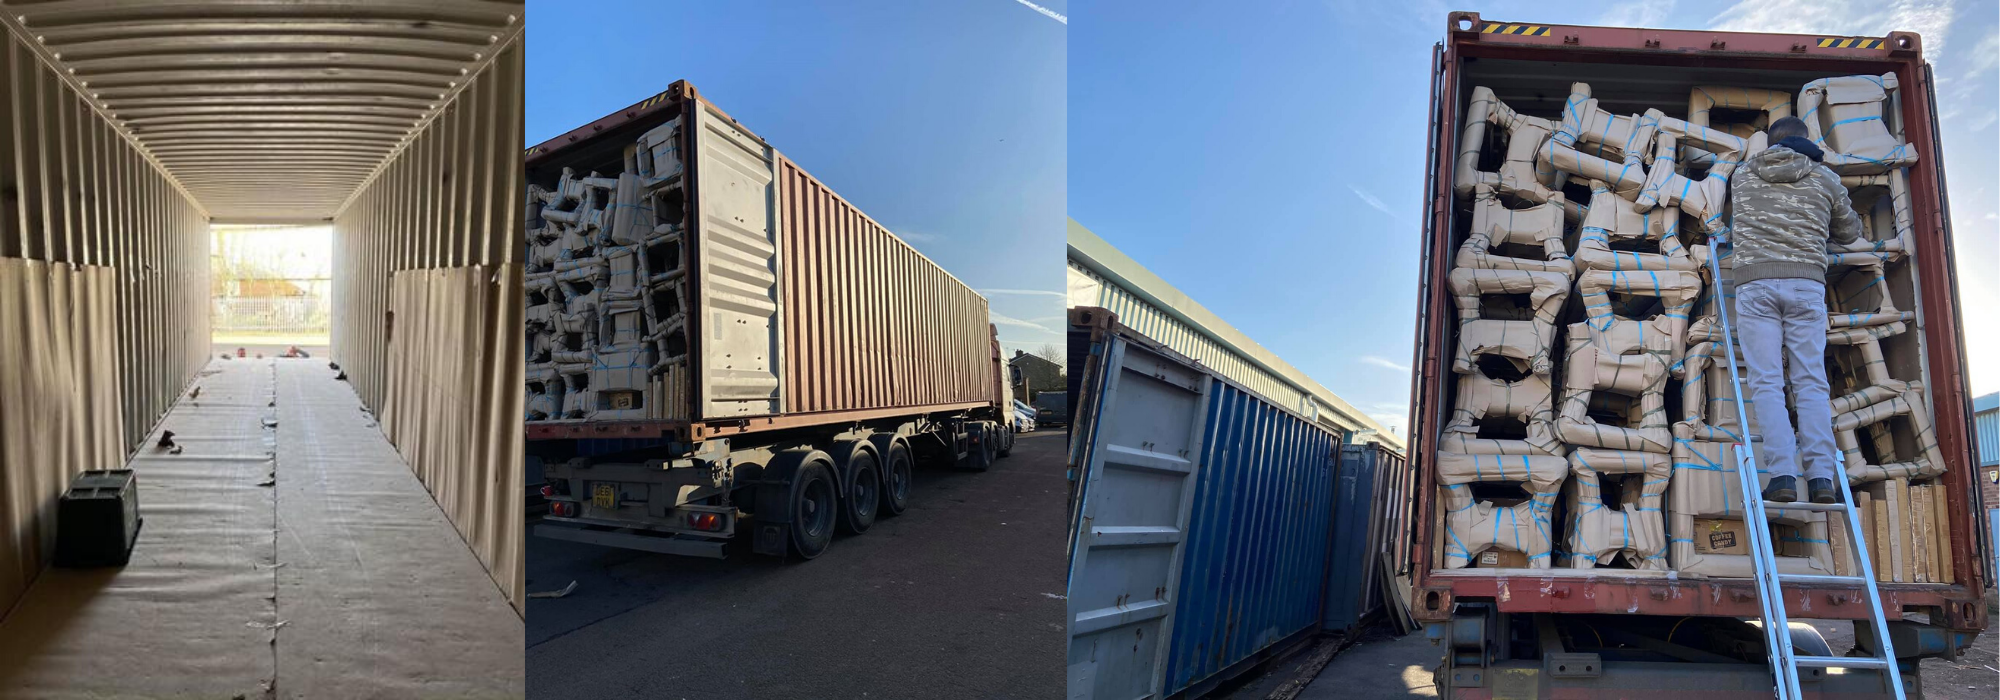 40ft container full